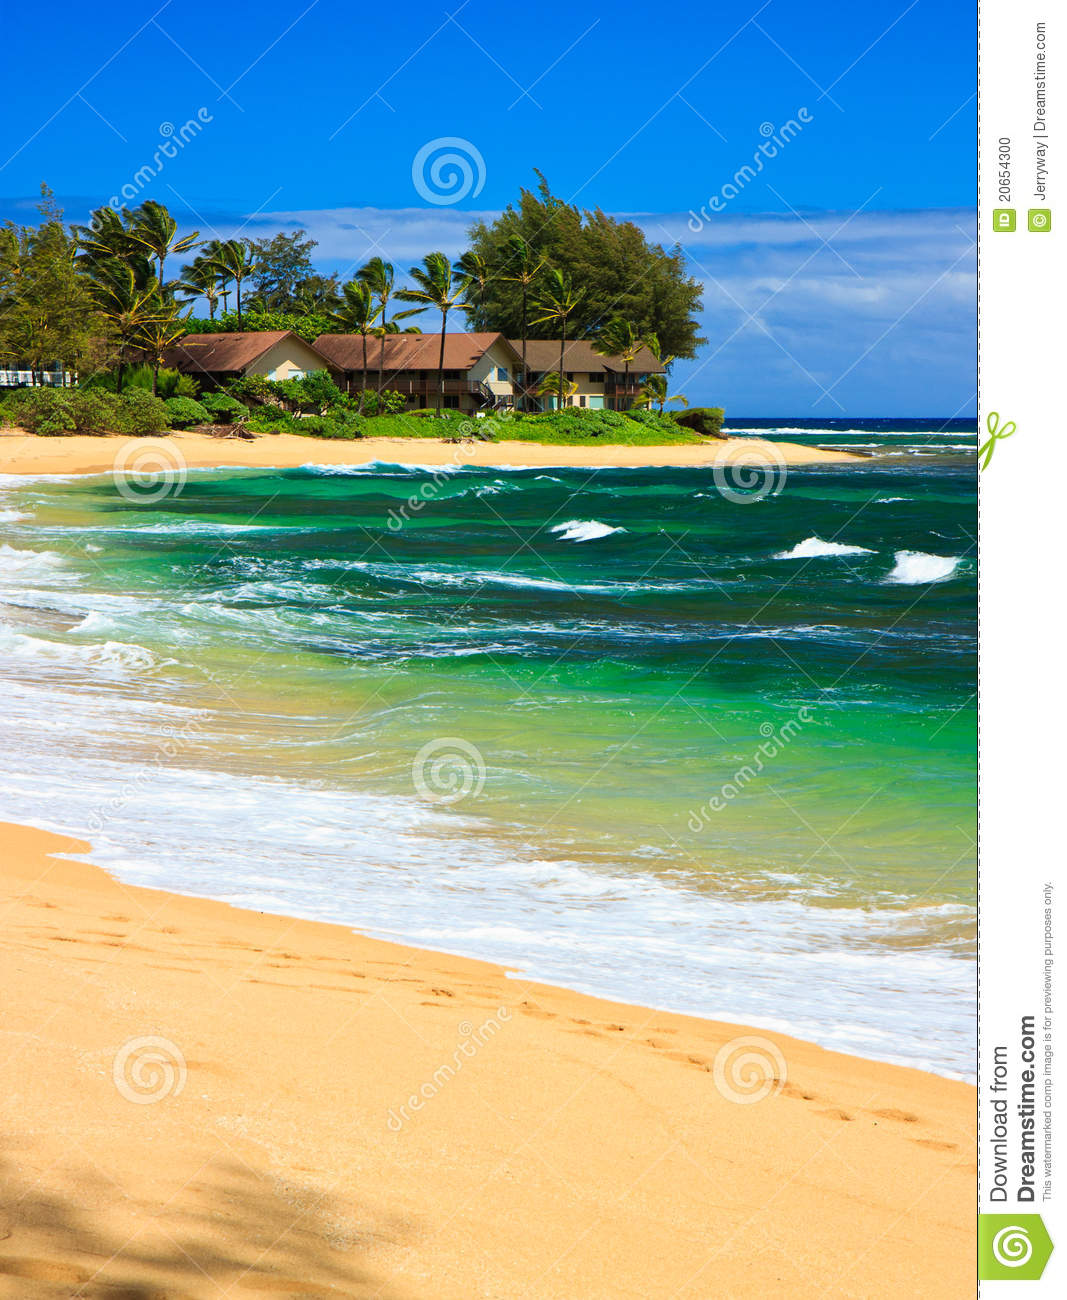 Kauai Beaches: Tropical Paradise, Wainiha Beach, Kauai, Hawaii Stock